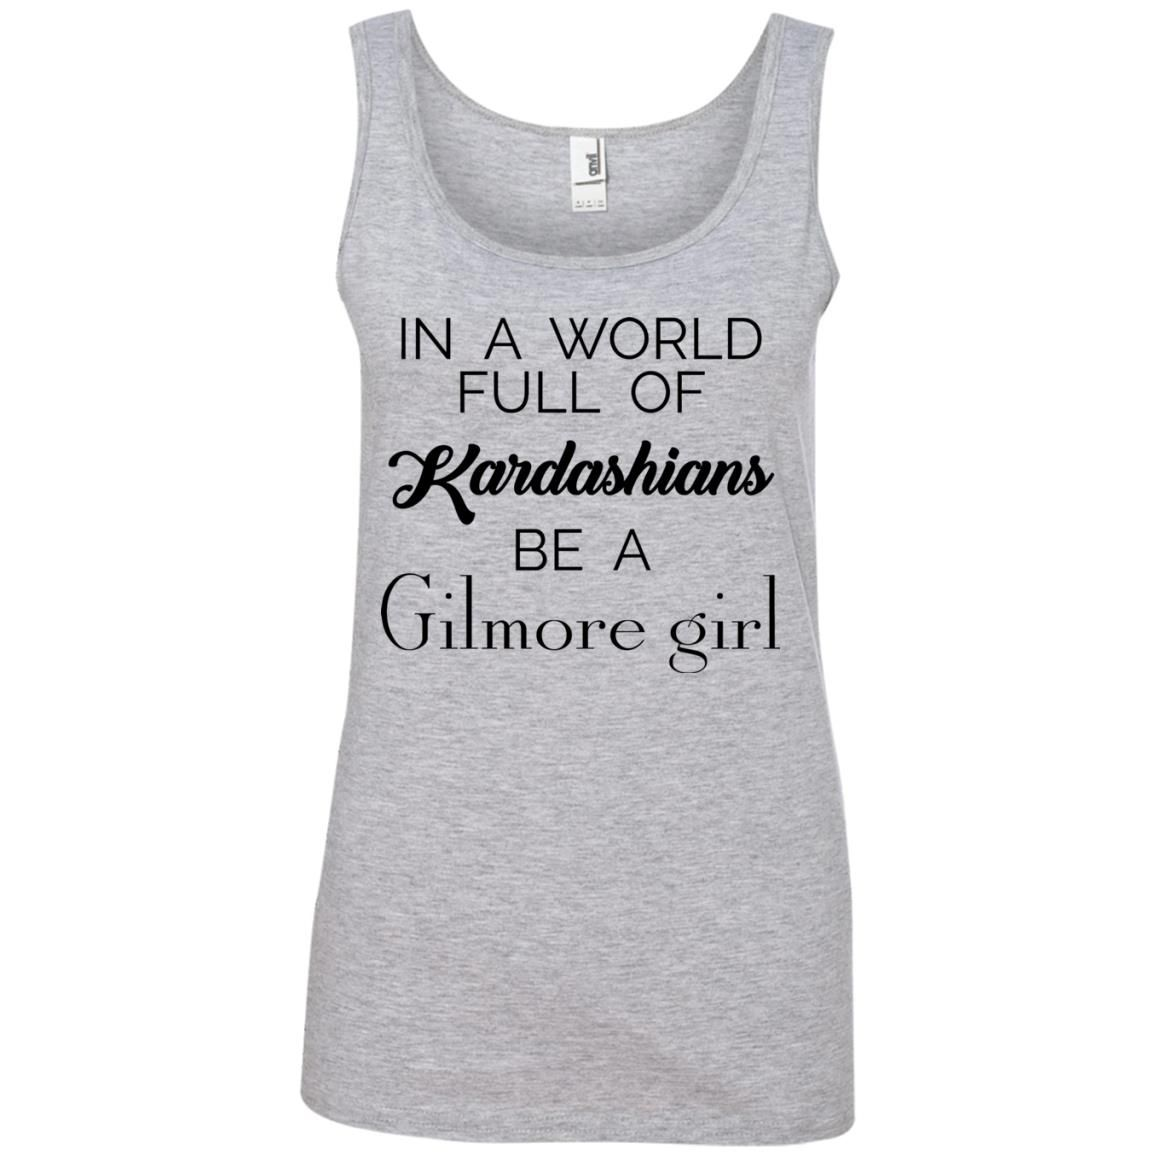 image 6 - In a World full of Kardashians Be a Gilmore Girl shirt